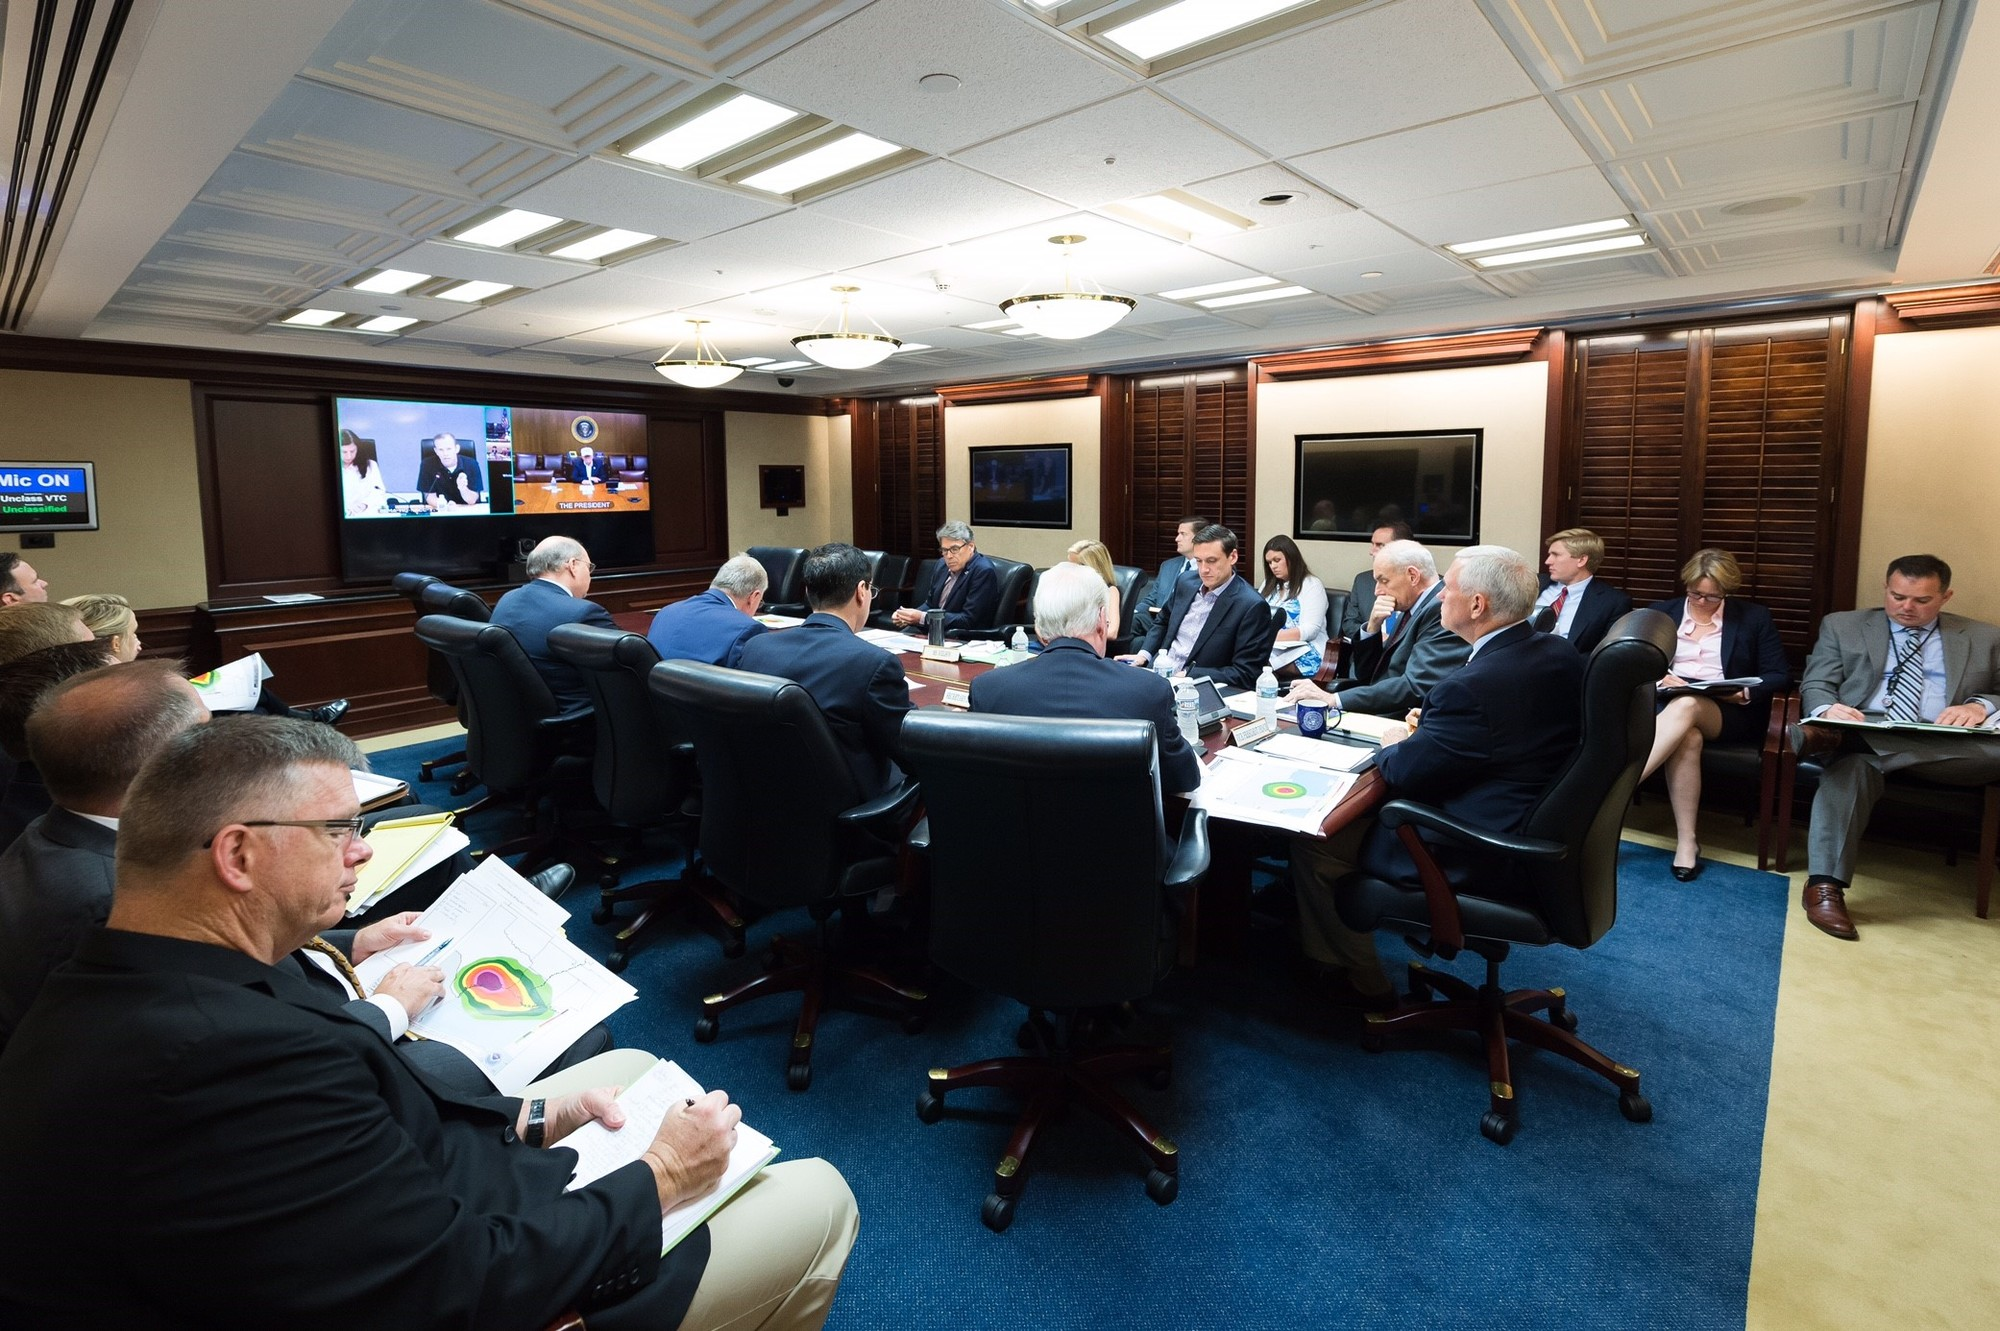 "President Donald J. Trump conducts a video teleconference on Hurricane Harvey, Saturday, August 26, 2017, from Camp David, Confers with Vice President Mike Pence; Chief of Staff Gen. John Kelly; Thomas Bossert, Homeland Security Advisor; Gen. Keith Kellogg, National Security Advisor Chief of Staff; Deputy Chief of Staff for White House Operations, Joe Hagin; Elaine Duke, Acting Secretary of the Department of Homeland Security; Health and Human Service Secretary Tom Price; U.S. Secretary of Energy Rick Perry; White House Deputy Chief of Staff Kirstjen Nielsen and William B. ""Brock"" Long, Administrator of FEMA. (Official White House Photo by Andrea Hanks)?"